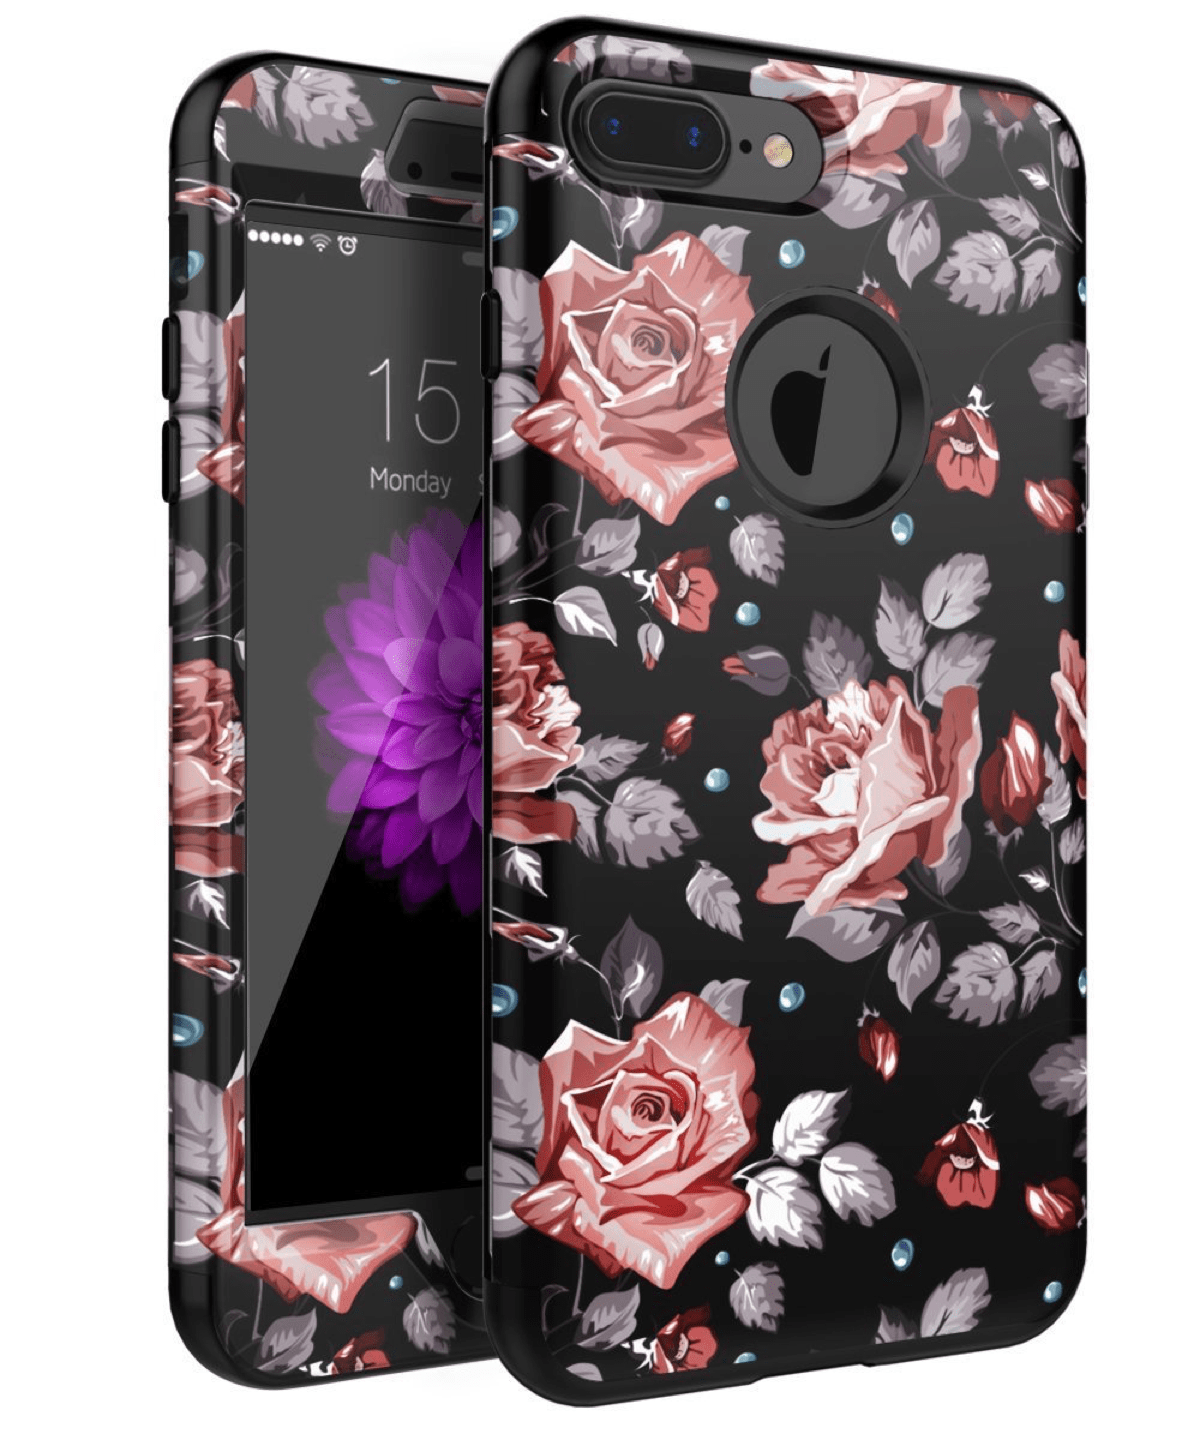 XIQI iPhone Plus case in our list of Mother's Day iPhone cases.